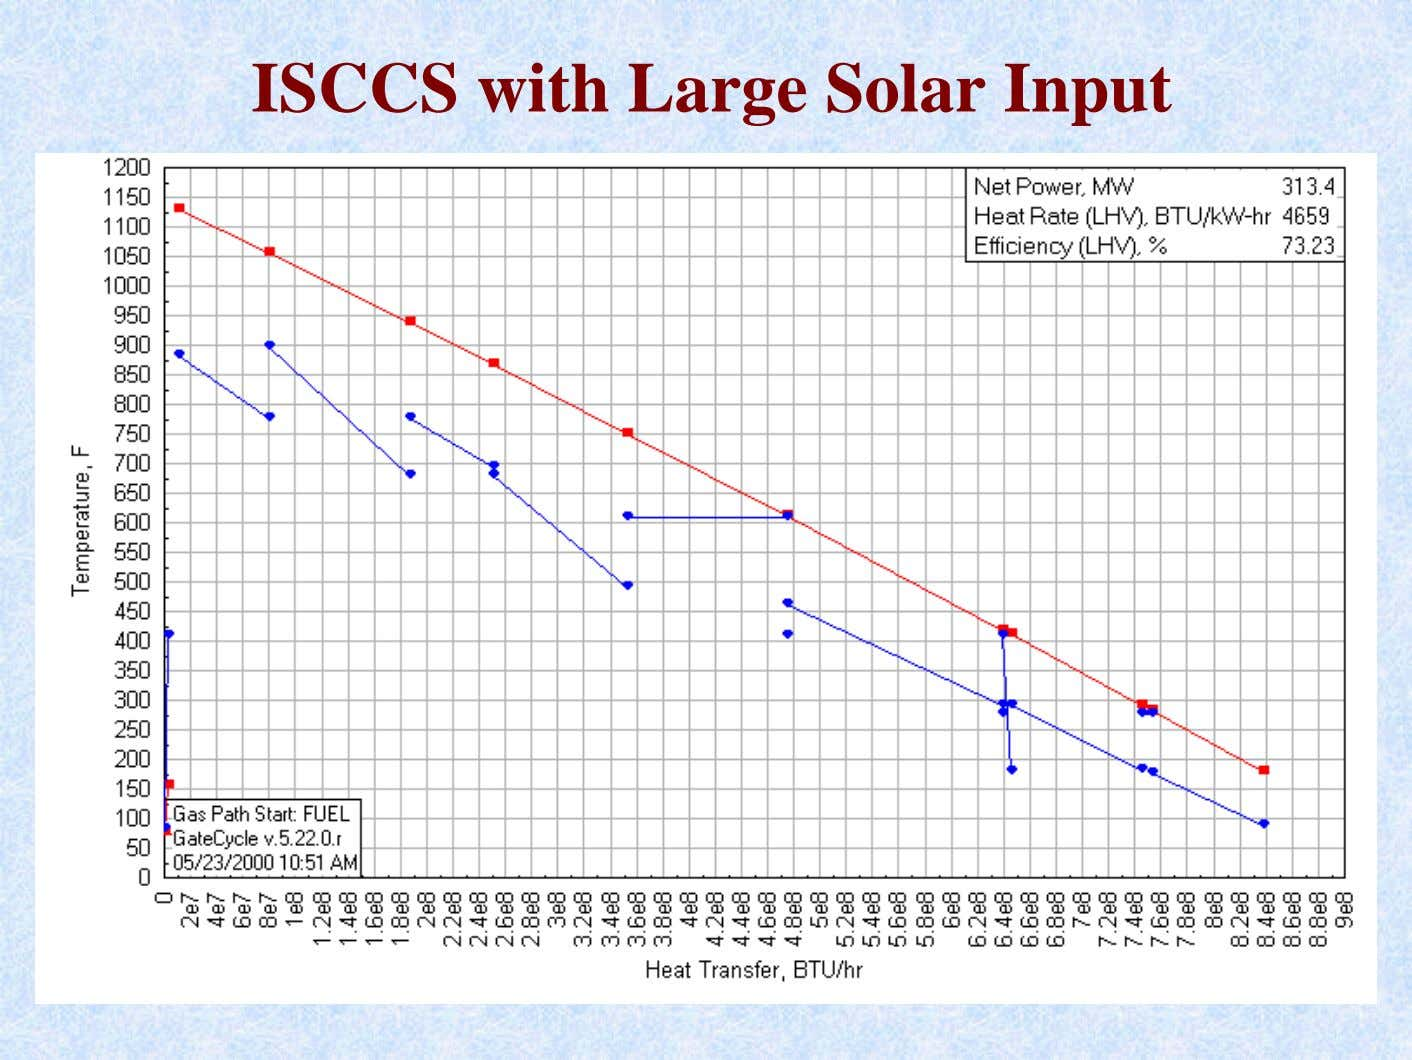 ISCCS with Large Solar Input